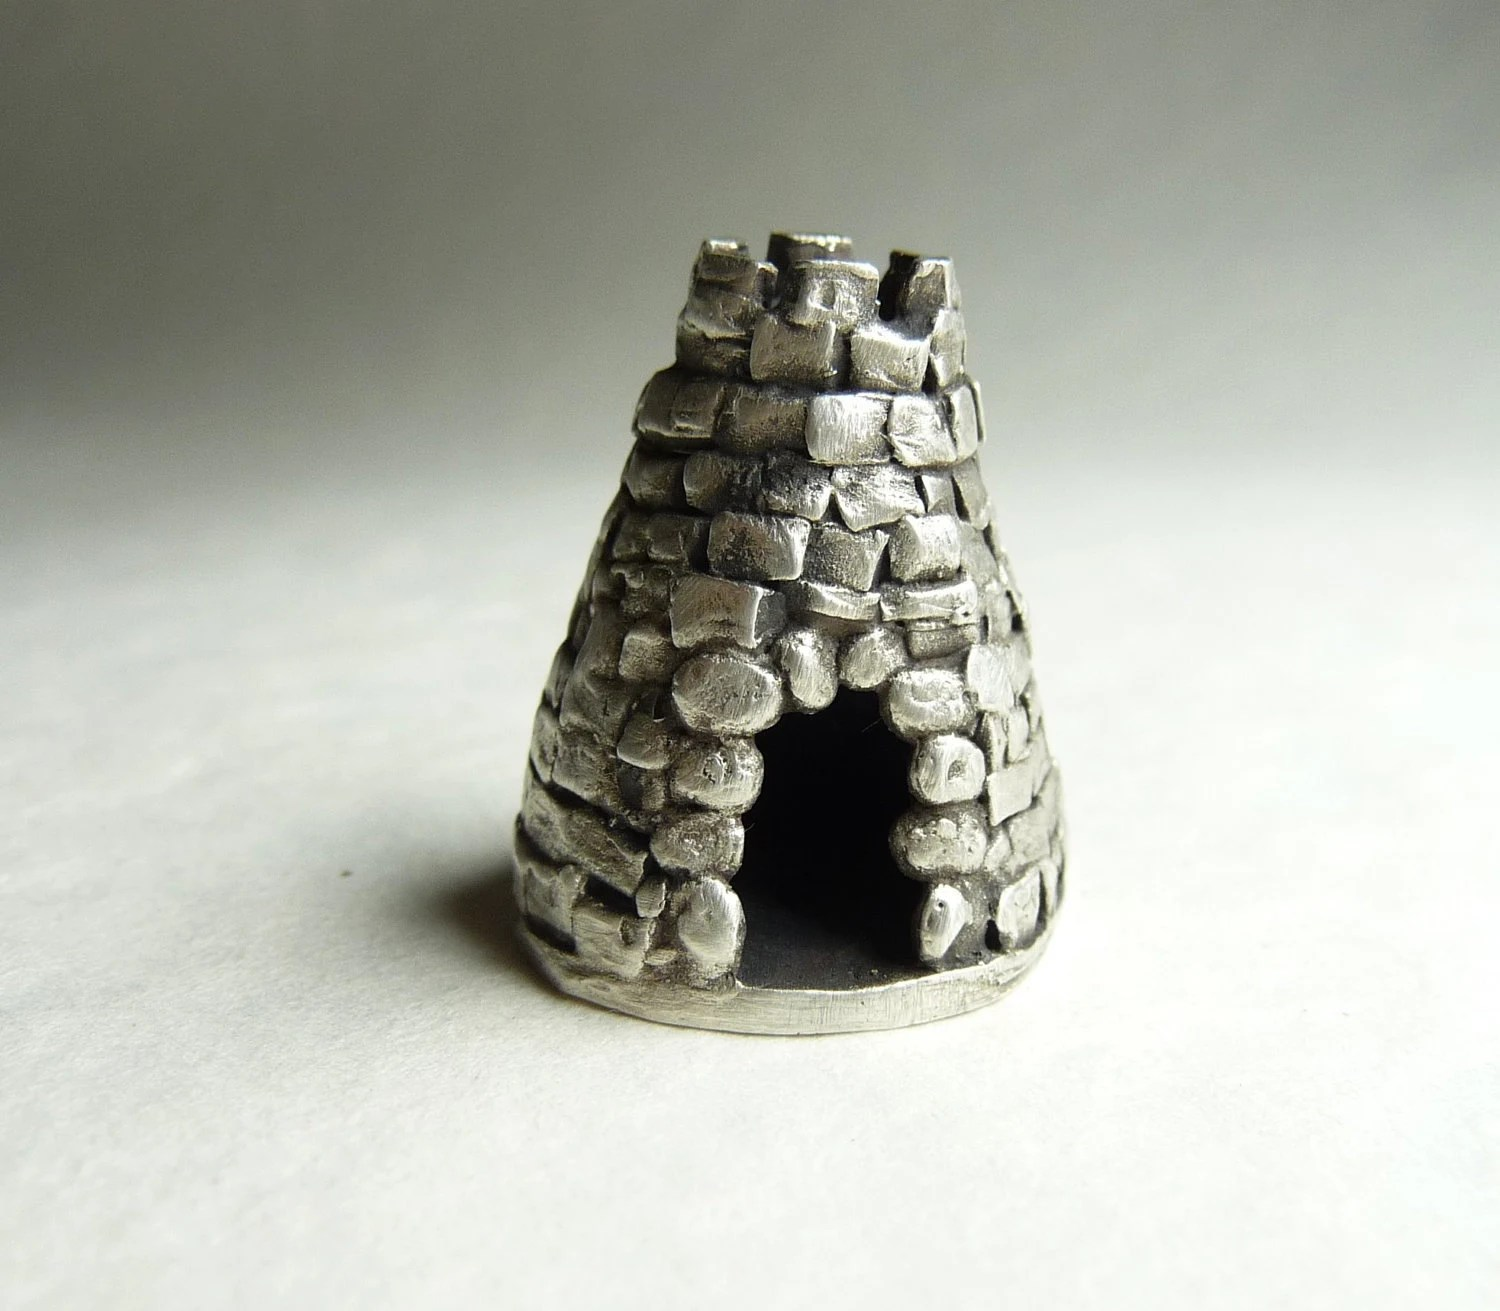 """Haunted Halloween castle hidden message inside miniature tower built by hand from recycled fine silver, """"The Renhewitz Tower"""" - DreamofaDream"""